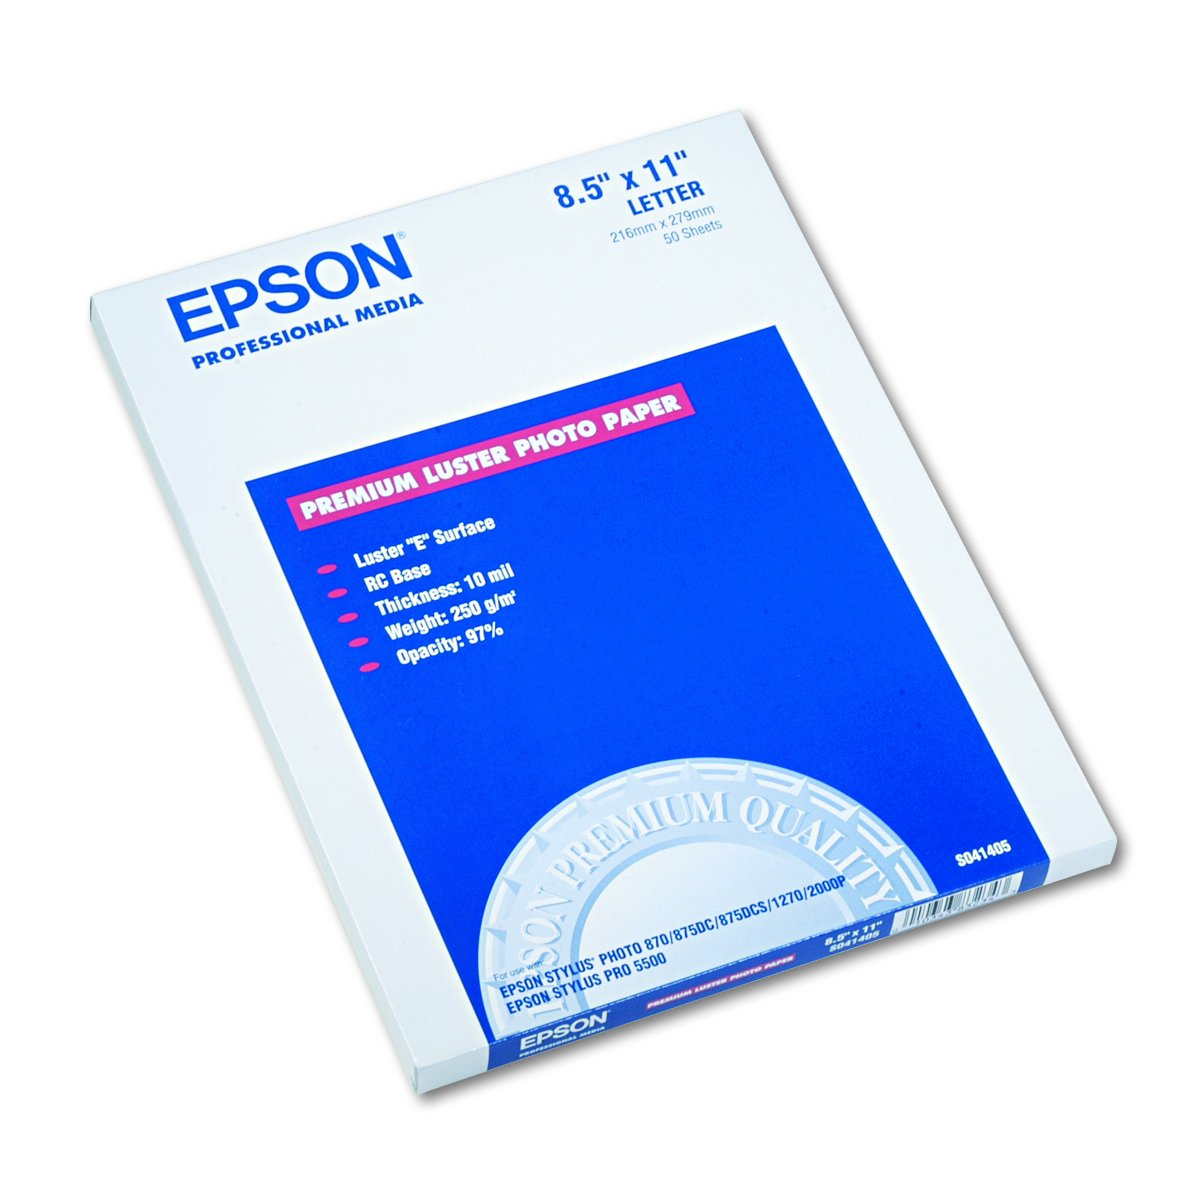 Epson S041405 Ultra Premium Photo Paper, 64 lbs., Luster, 8-1/2 x 11 (Pack of 50 Sheets) by Epson